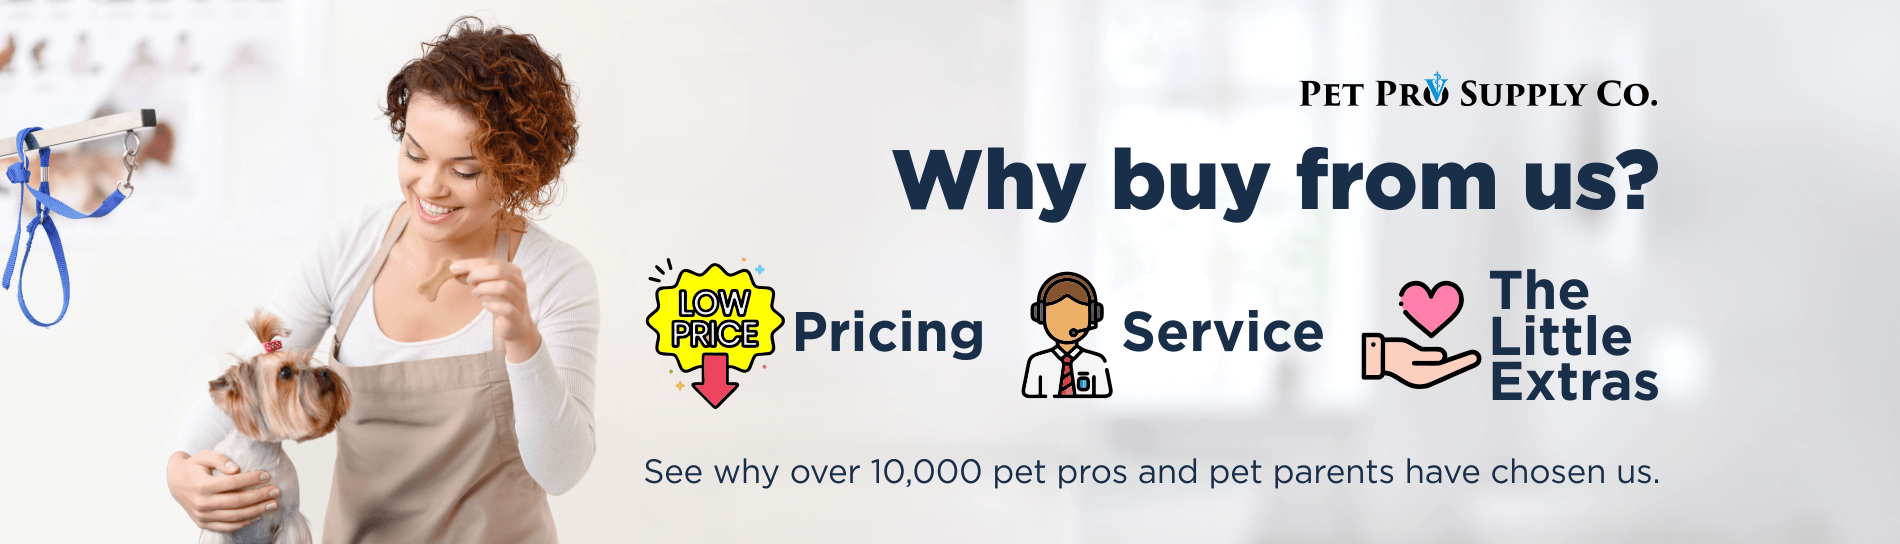 Why Buy From Pet Pro Supply Co.?